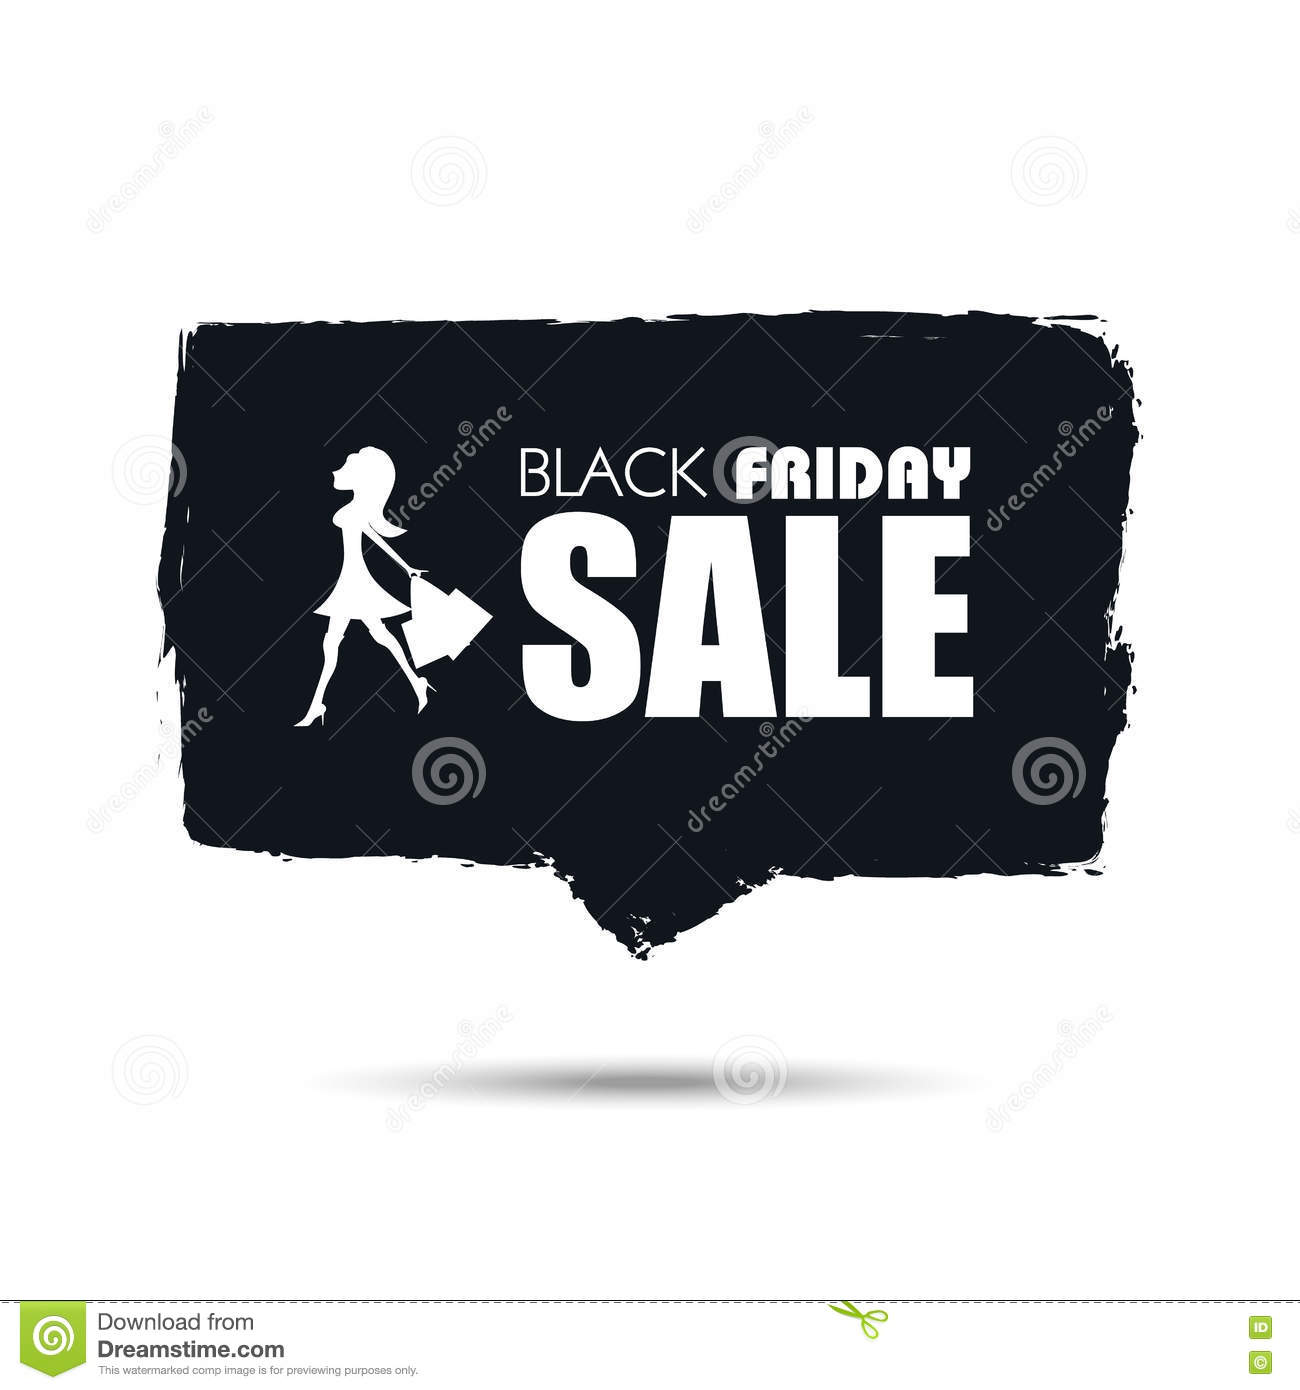 Black Friday Sale Banner With Woman Shopping For Fashion Designer Clothes And Dress Hand Painted Watercolor Vector Stock Vector Illustration Of Retail Banner 80604408